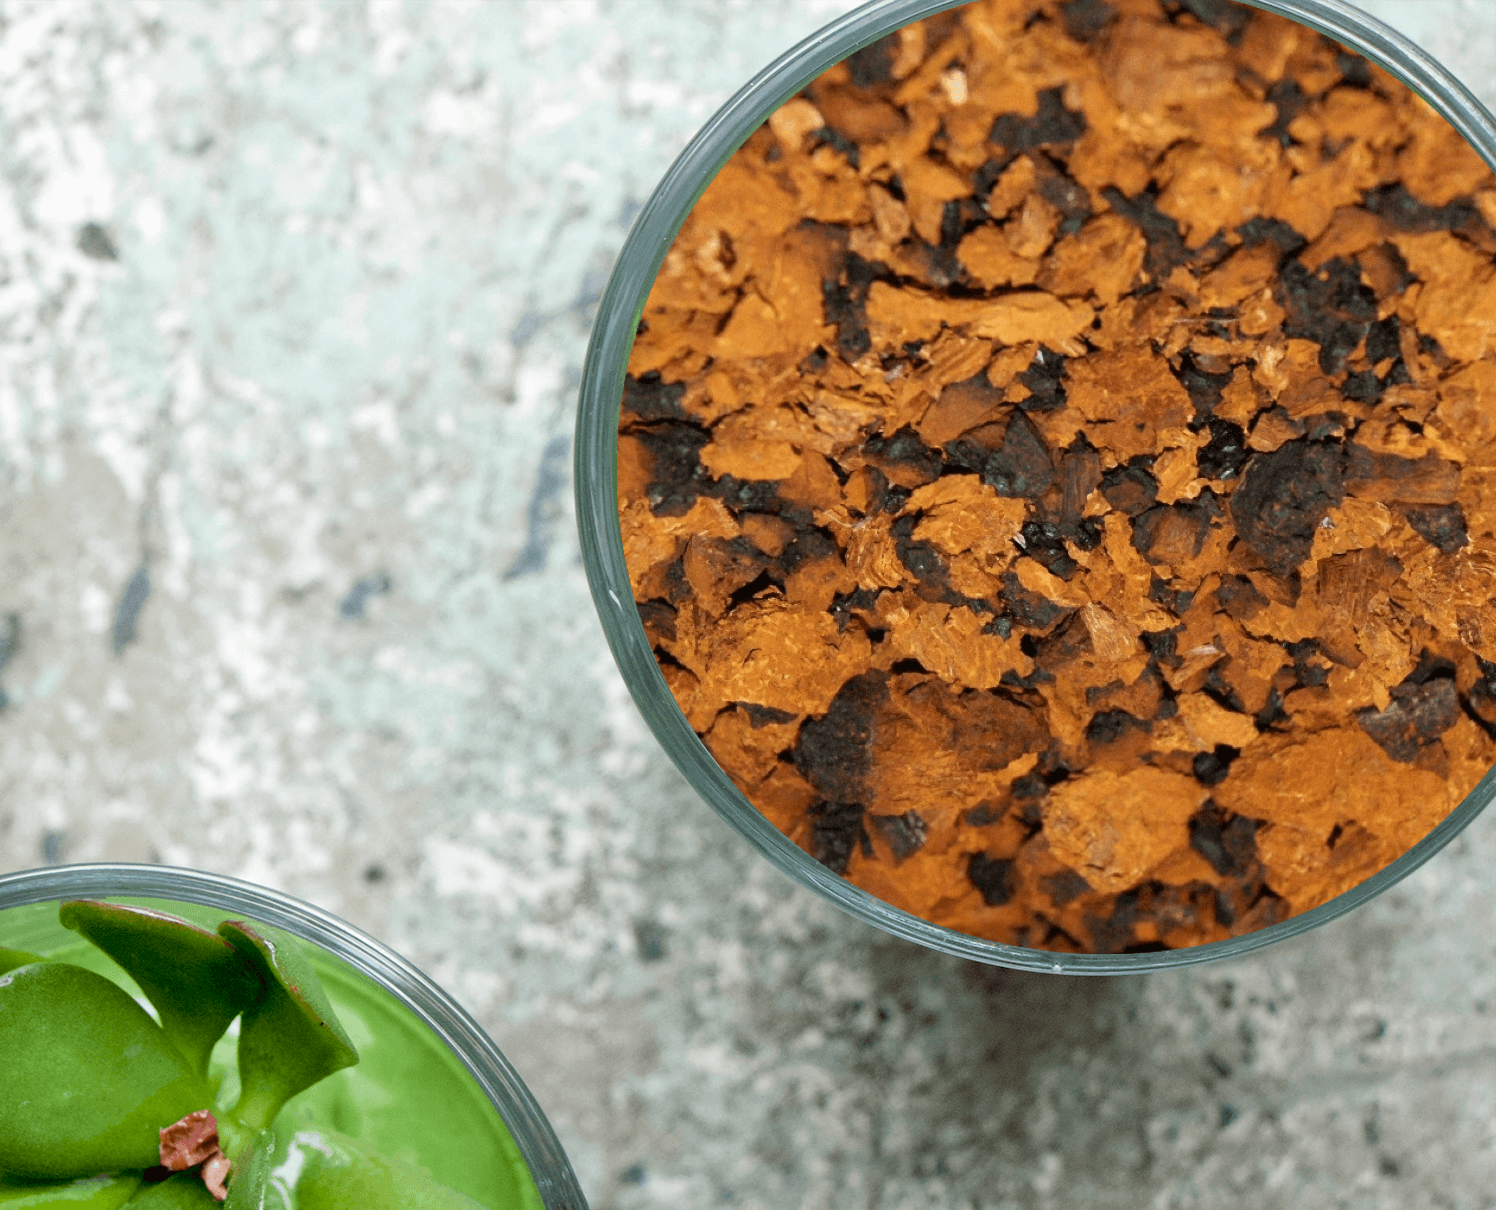 chaga superfood